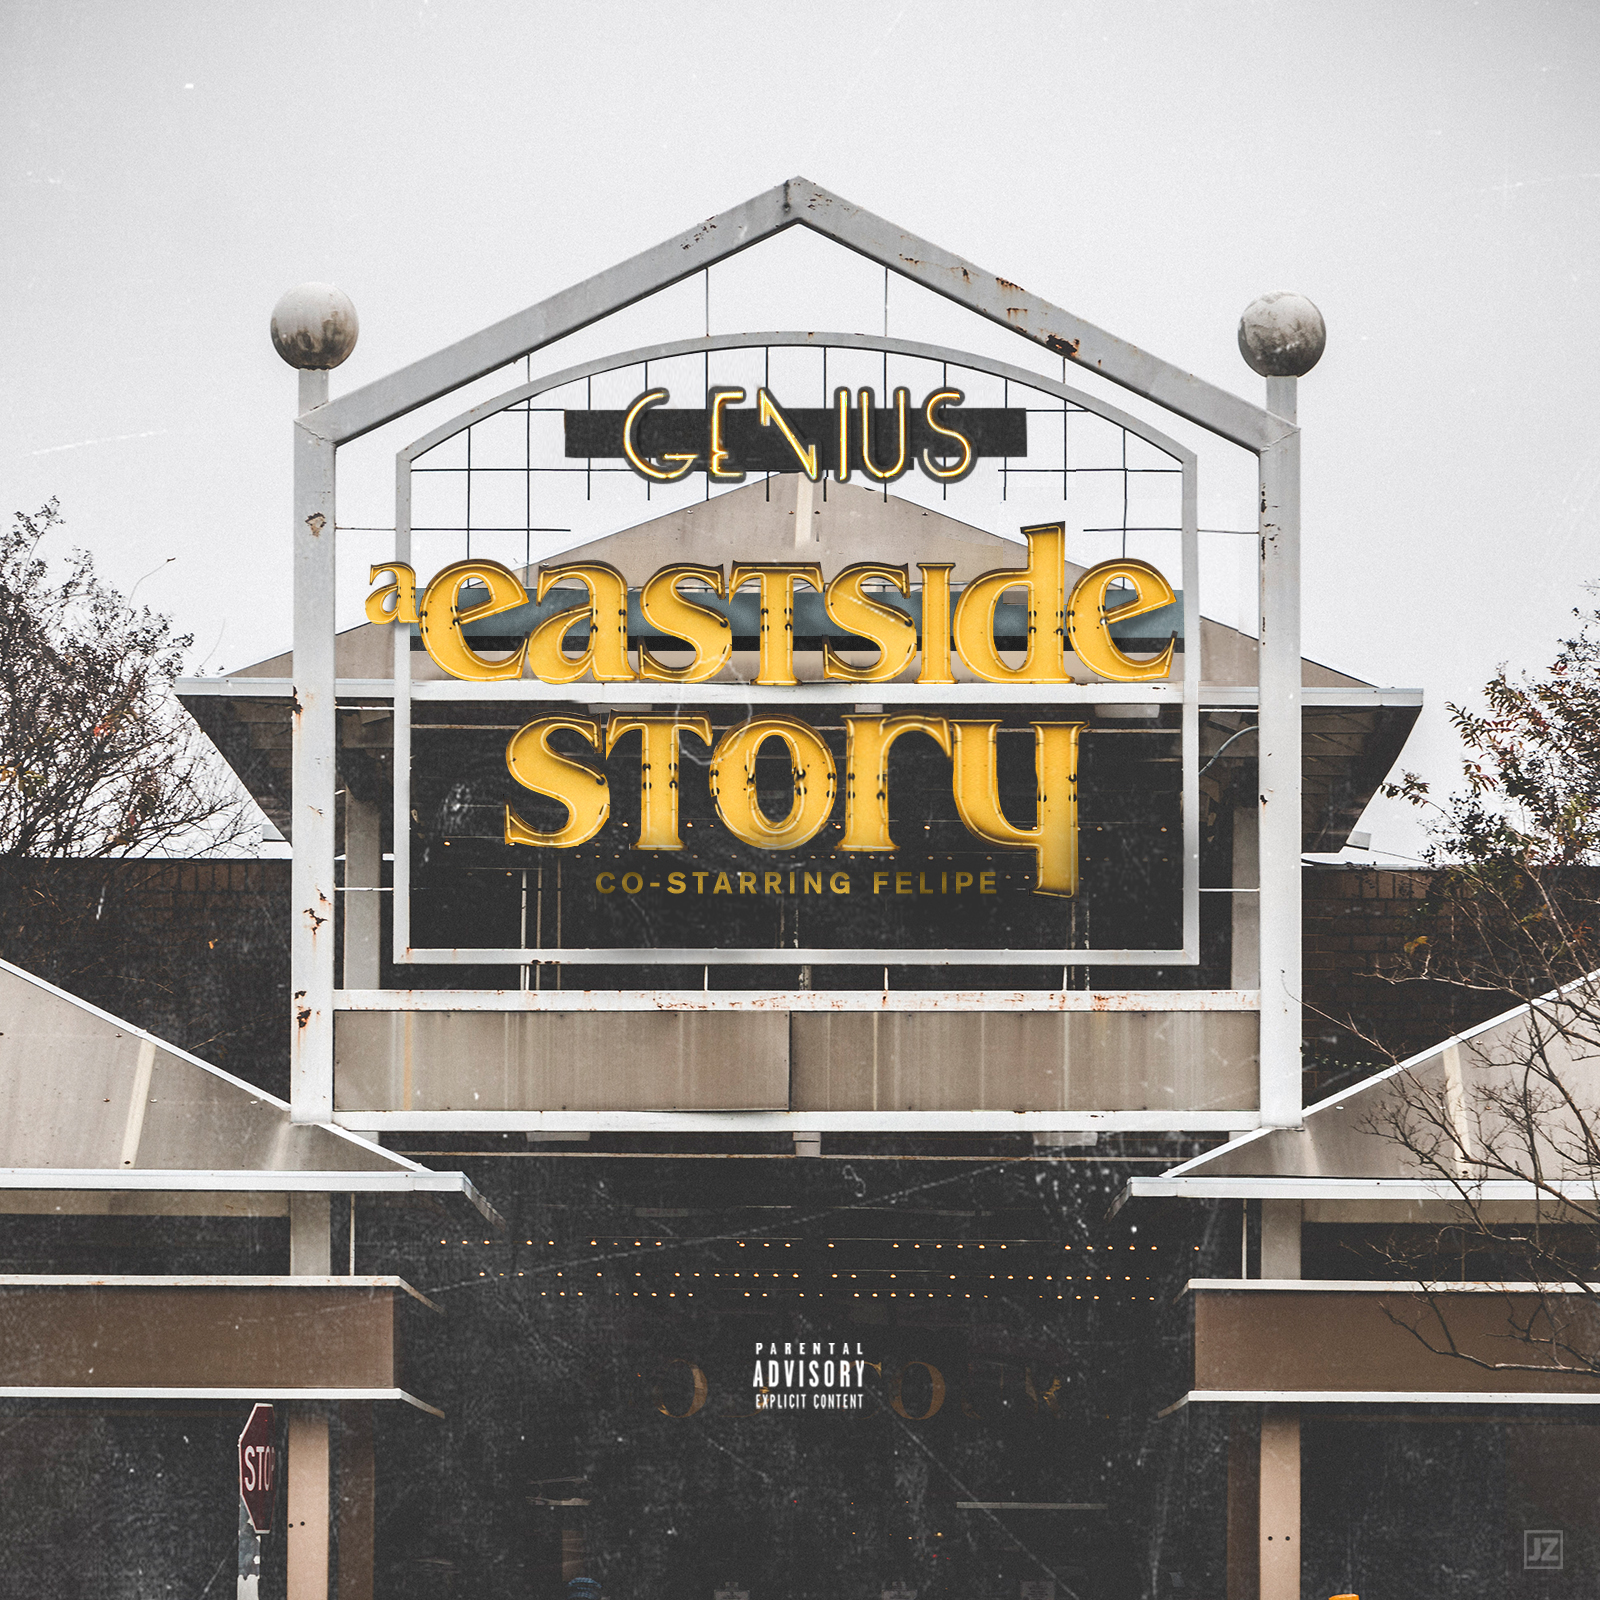 A EASTSIDE STORY